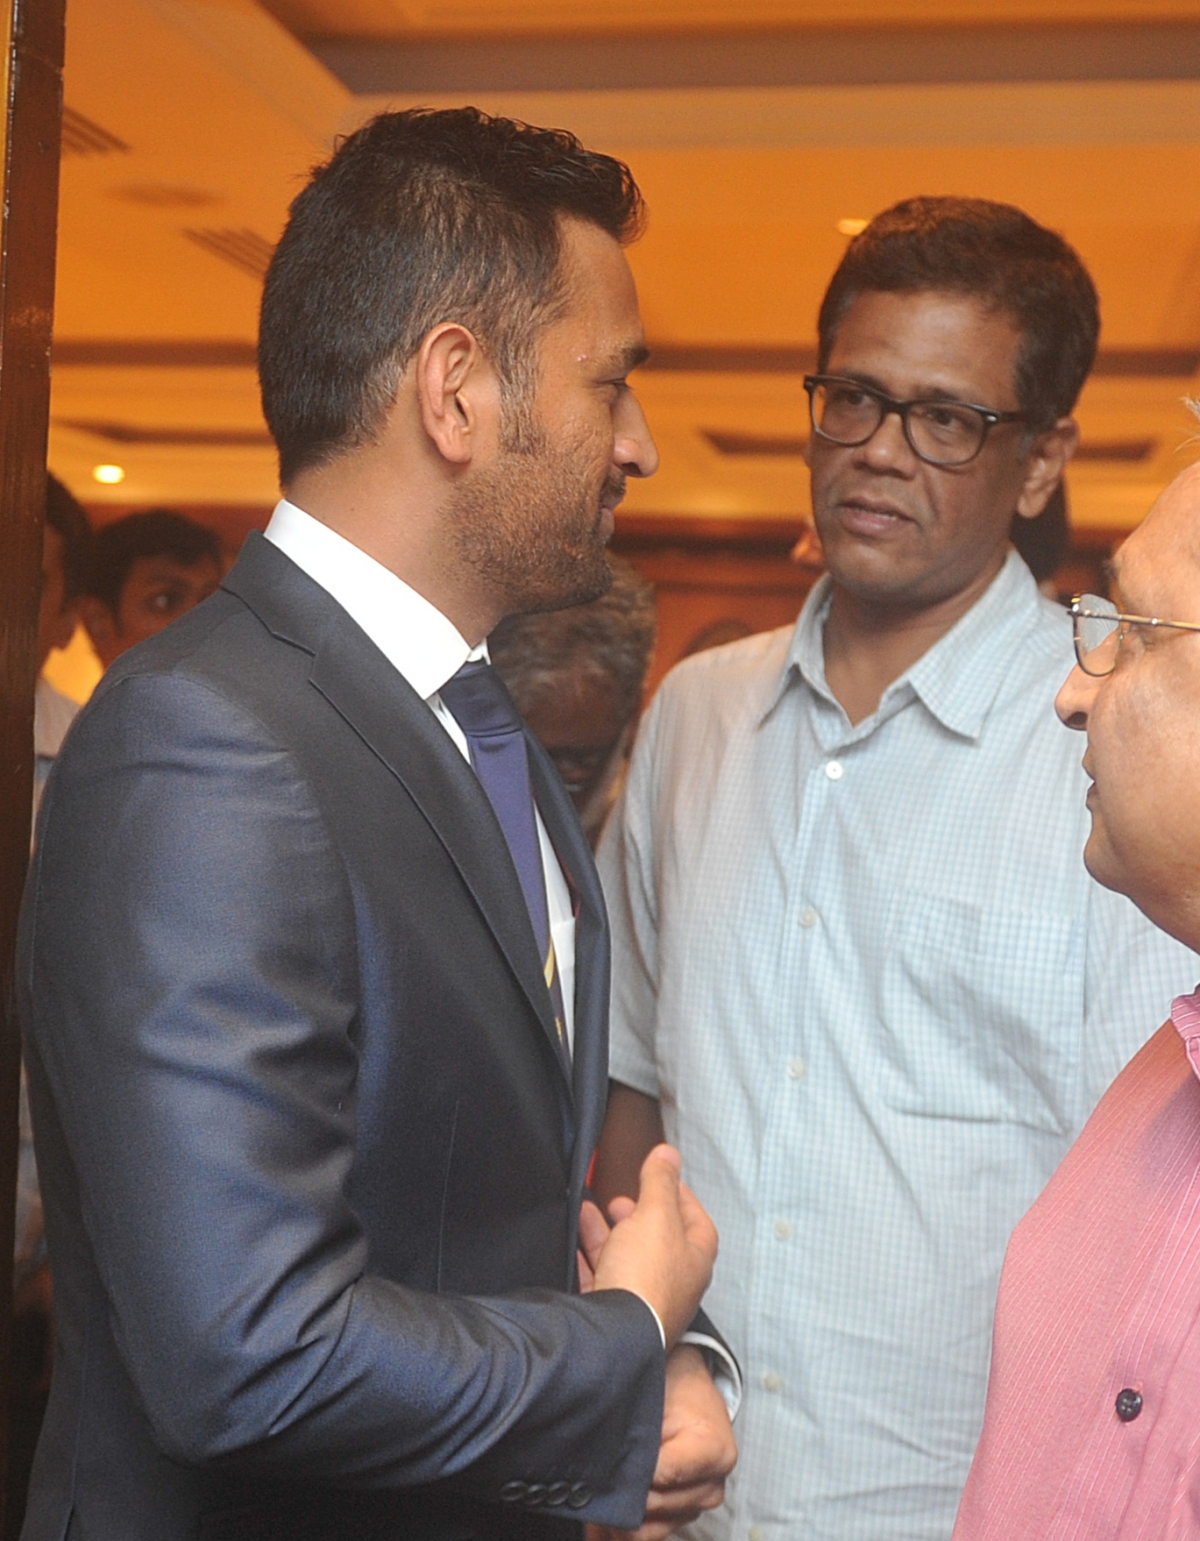 Dhoni and I in January 2016 before the Indian team's departure for Australia